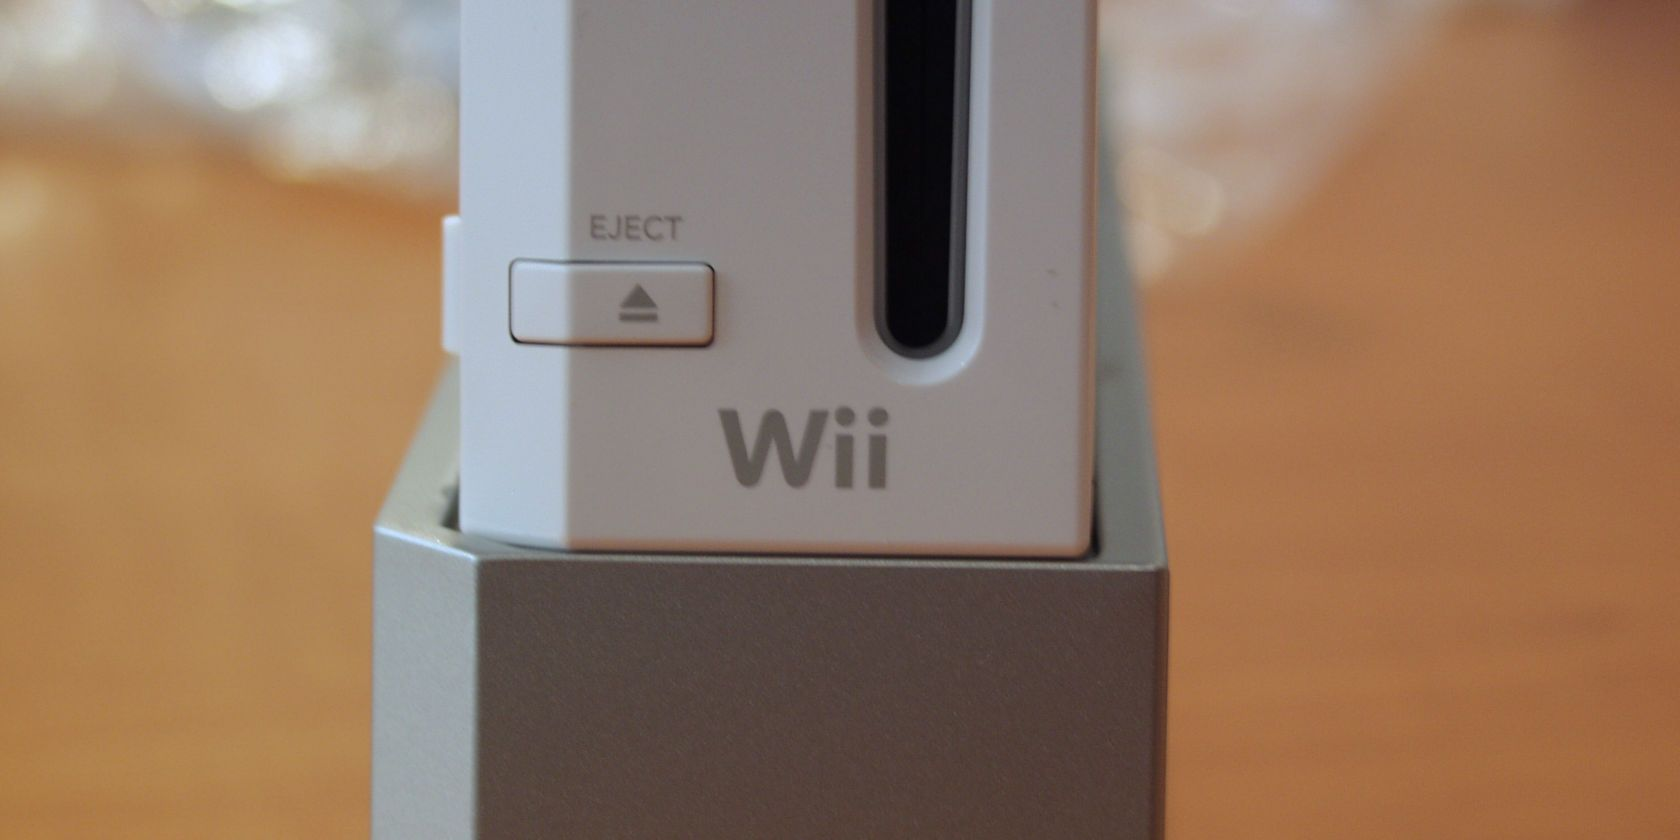 What to Do With an Old Nintendo Wii: 12 Fun DIY Ideas and Projects